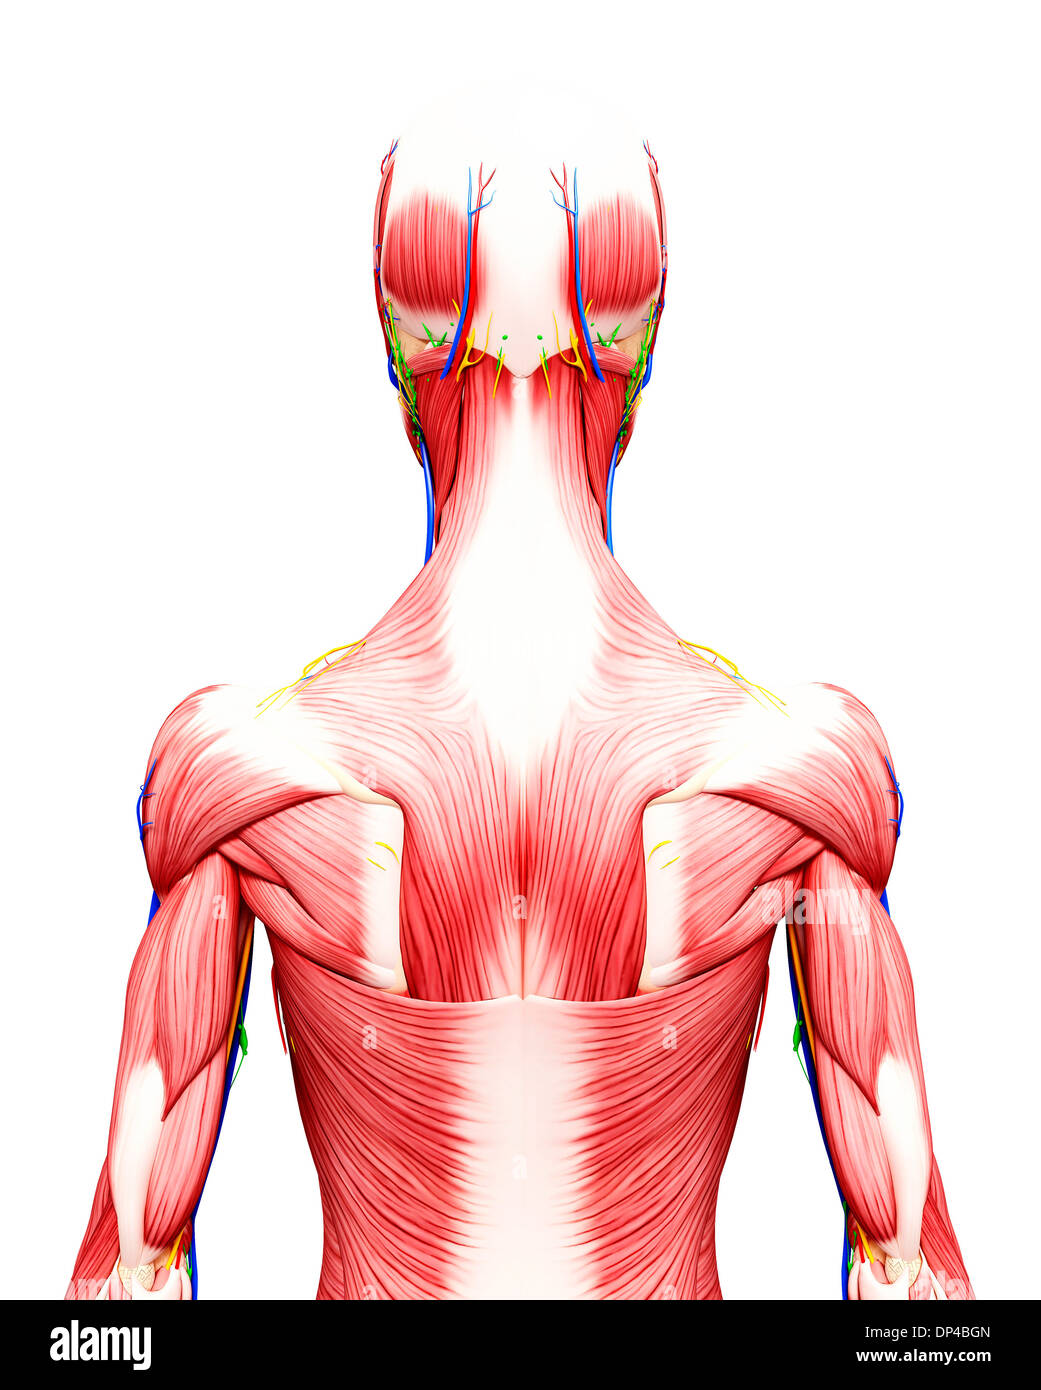 Rear Deltoid Stock Photos & Rear Deltoid Stock Images - Page 3 - Alamy